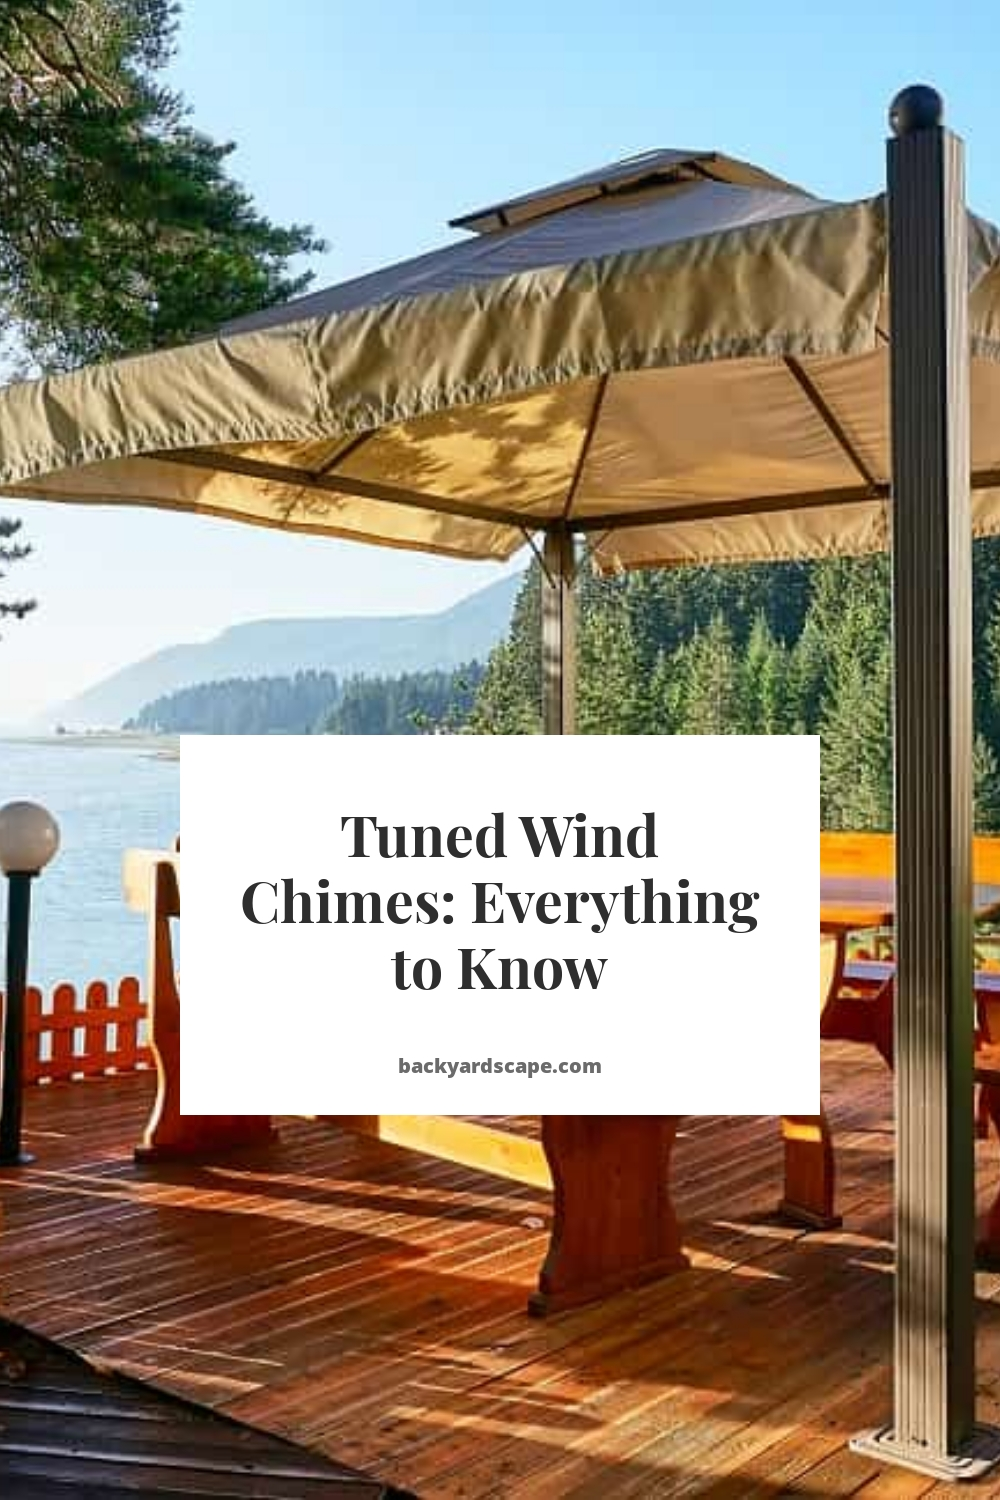 Tuned Wind Chimes: Everything to Know